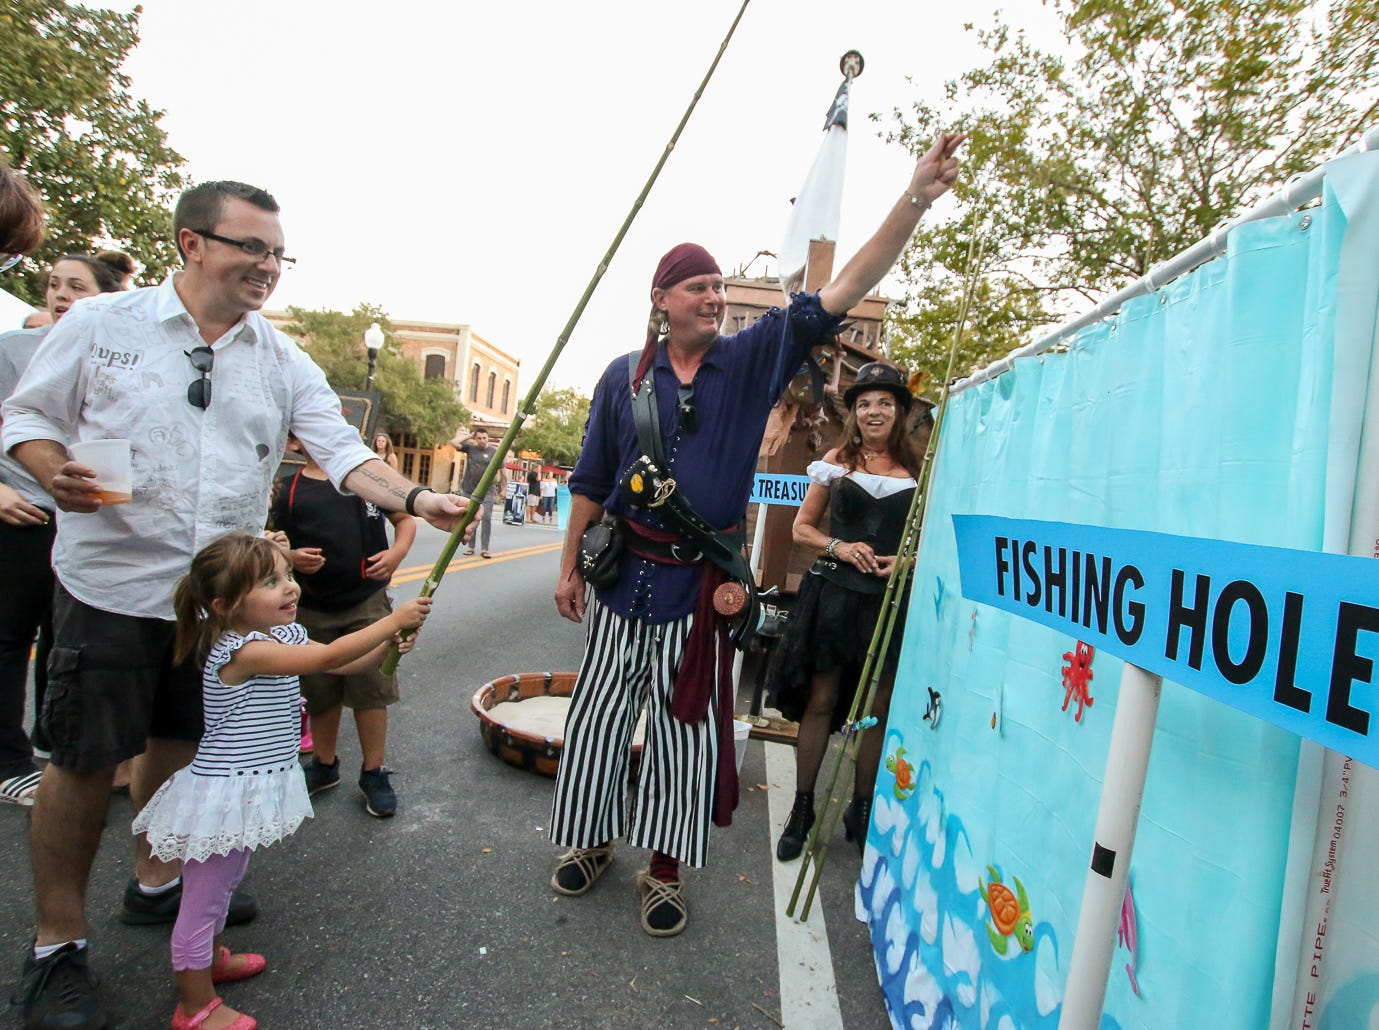 Krewe of Airship Pirates member Steven Helm, center, helps Mila Hietpas, 3, and her dad, Kevin, snag a prize from a pop-up faux fishing hole during Gallery Night on Friday, October 19, 2018.